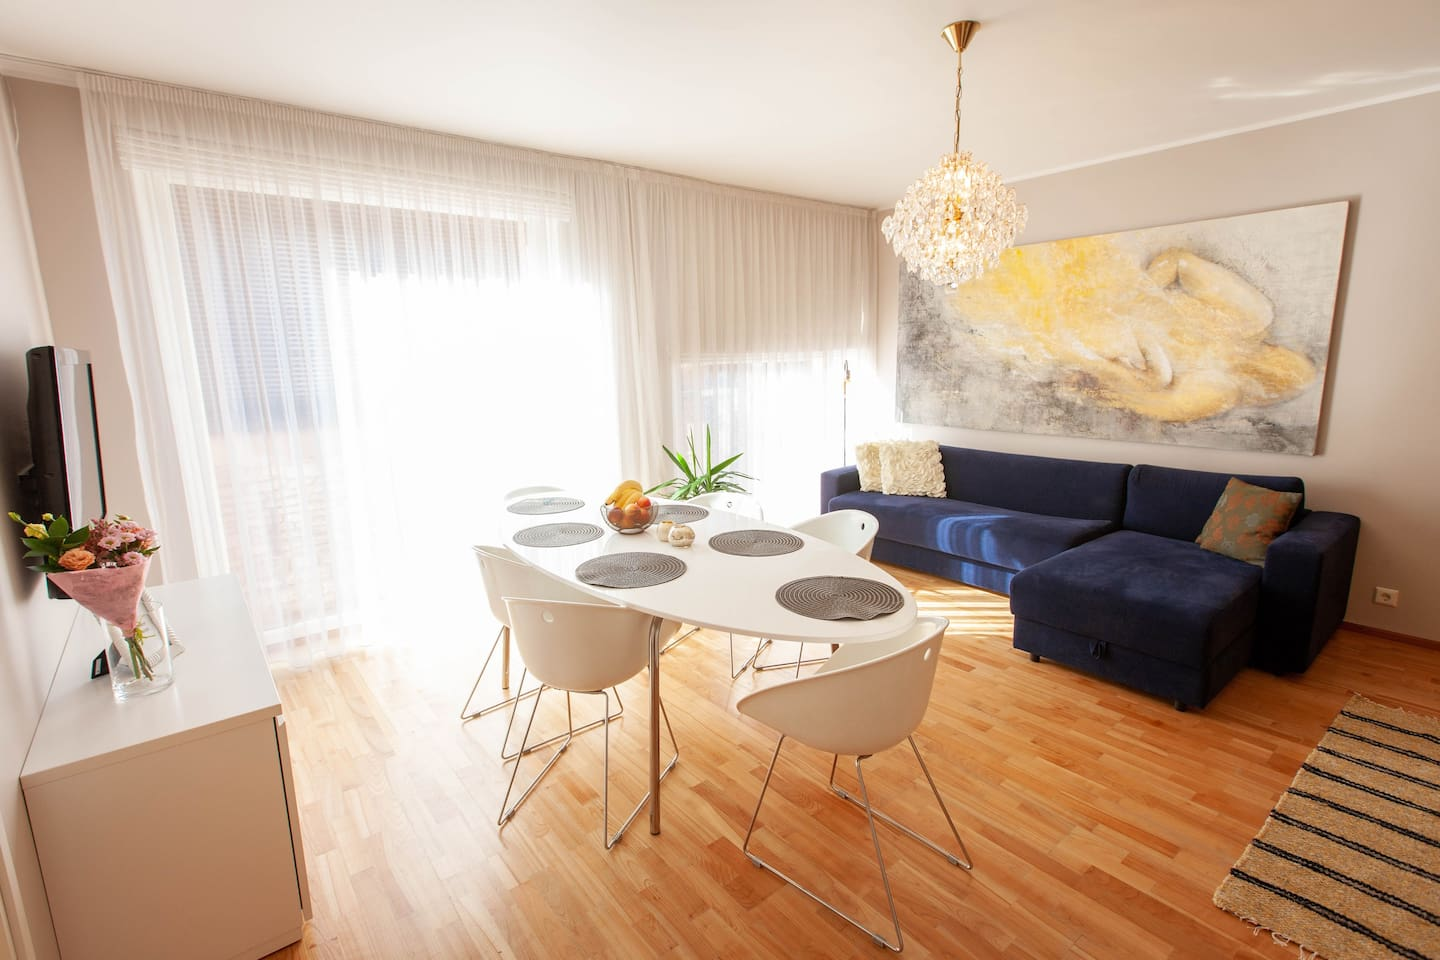 Living room has cosy coach and big table for work, dining or just spending time with your mates.